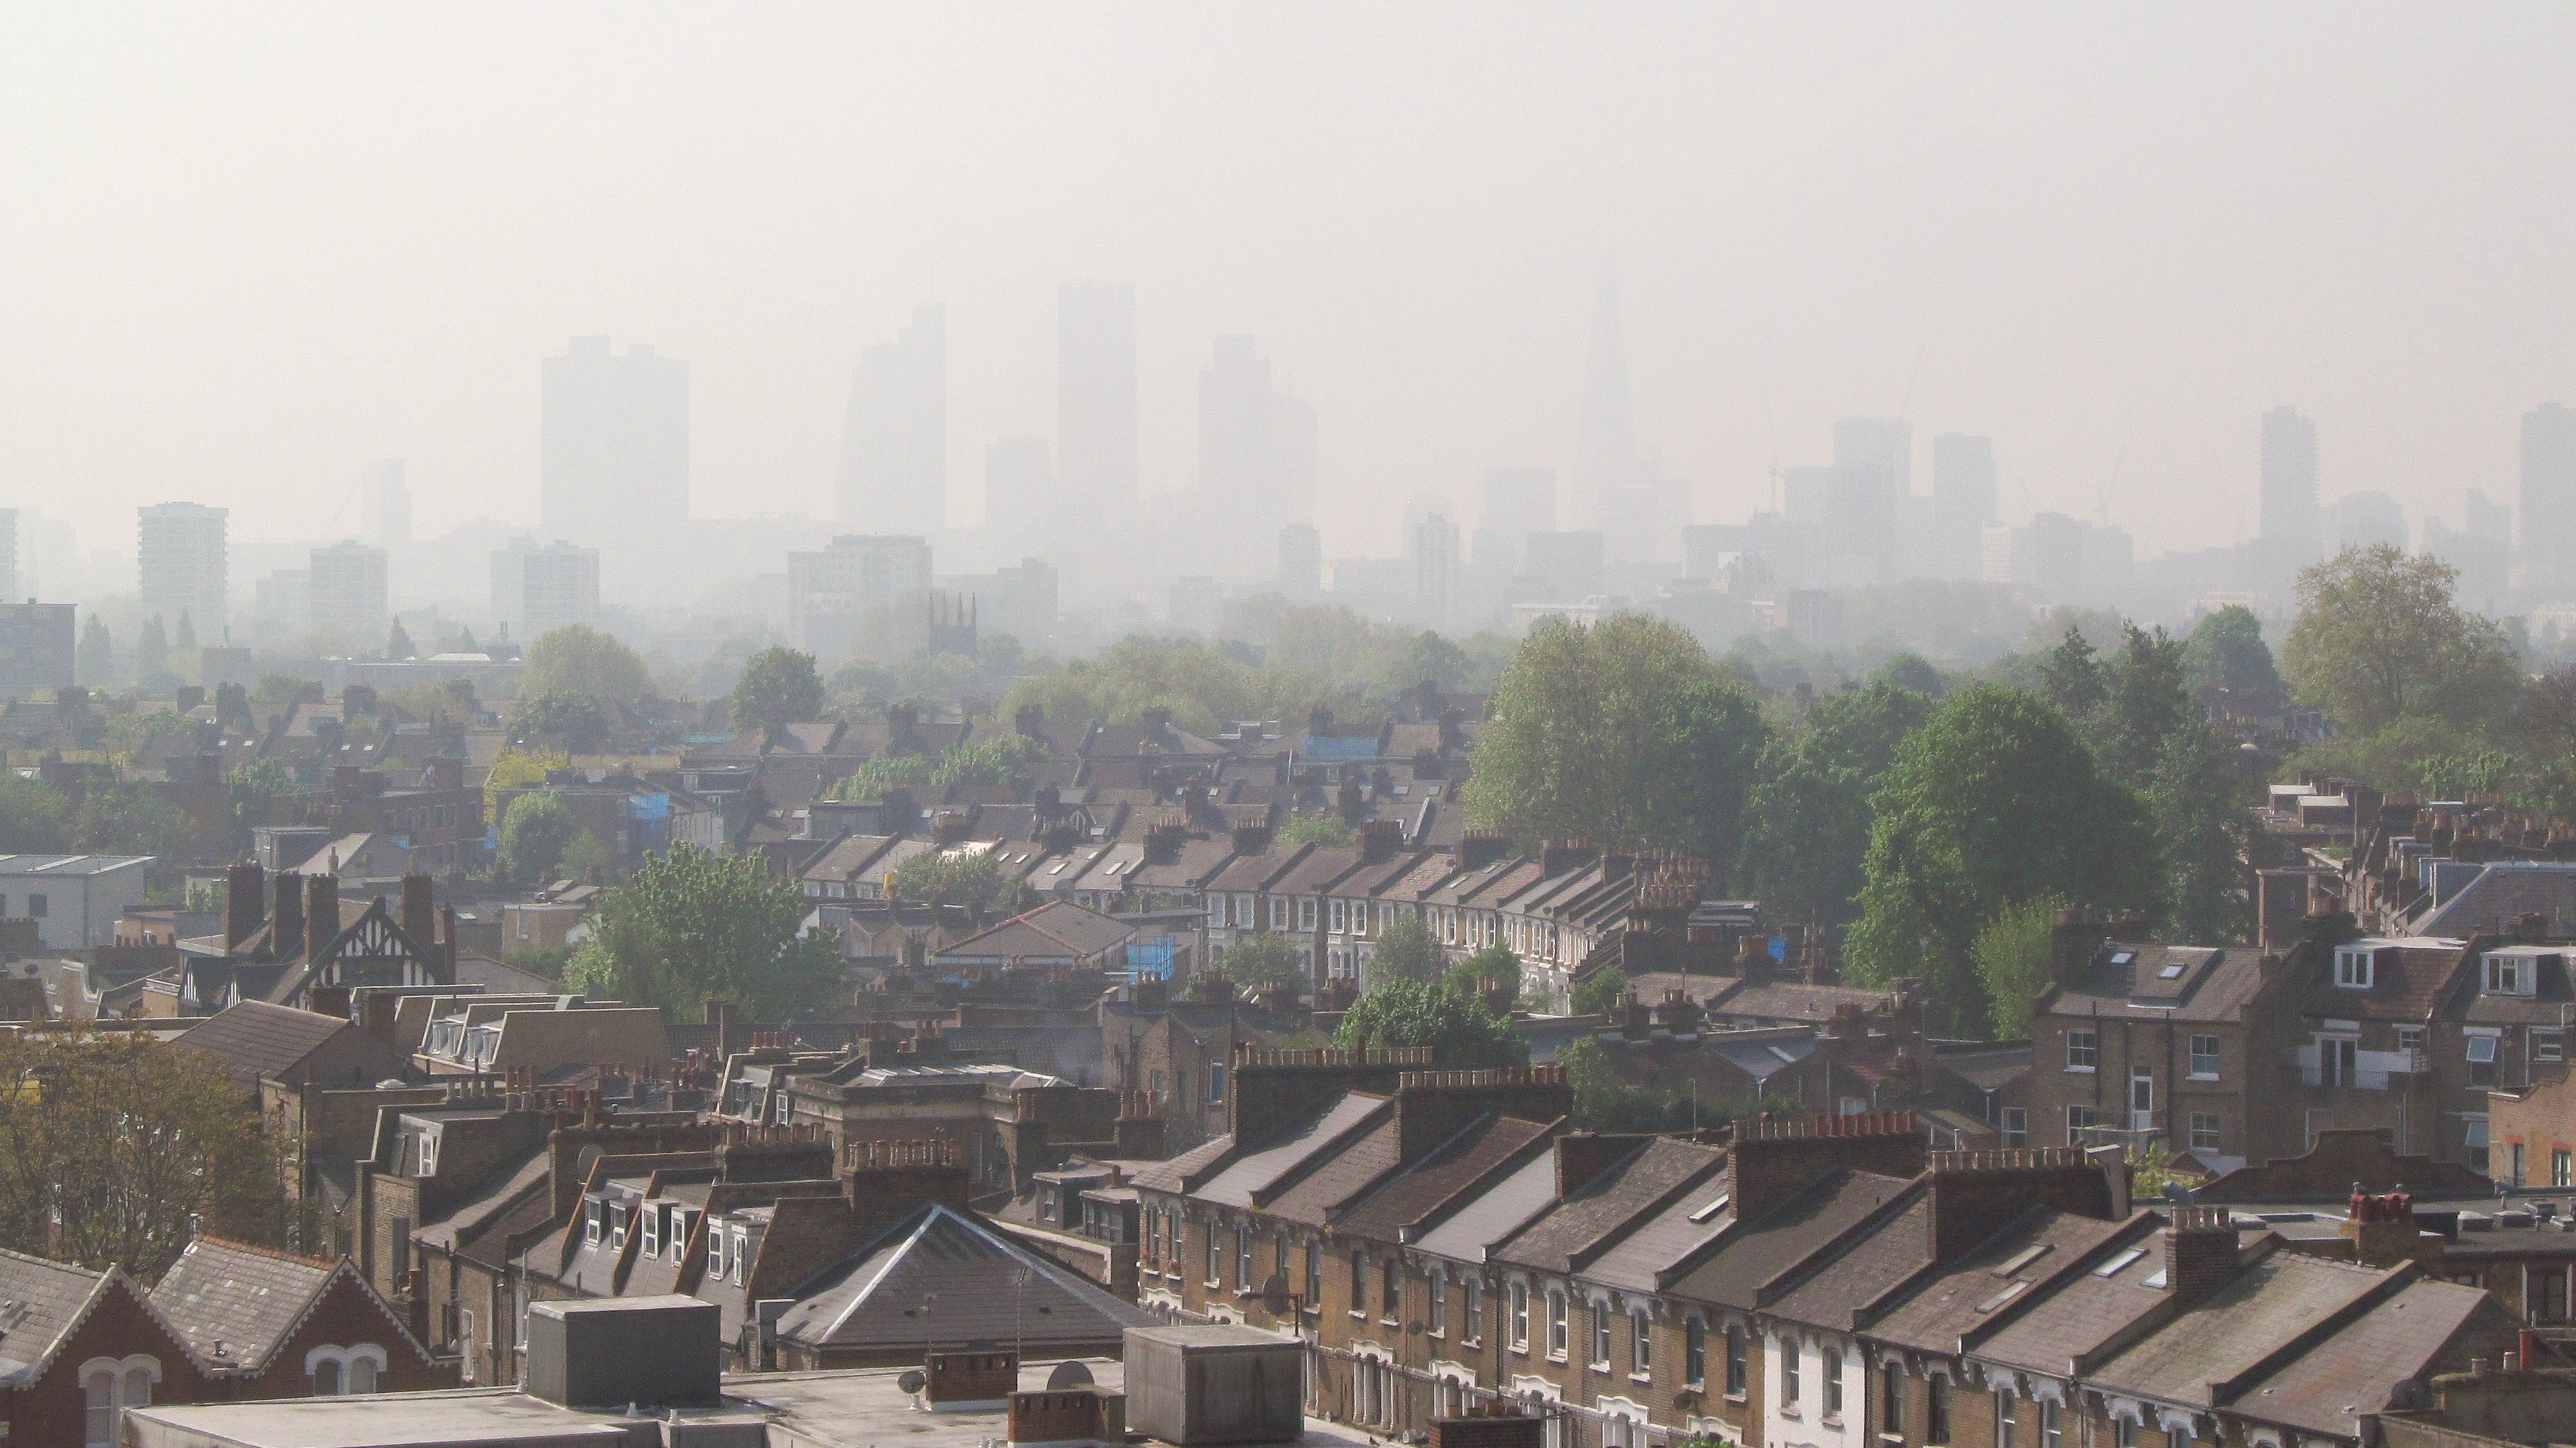 London at air pollution level 5 in 2014, viewed from Hackney. Pic: David Holt